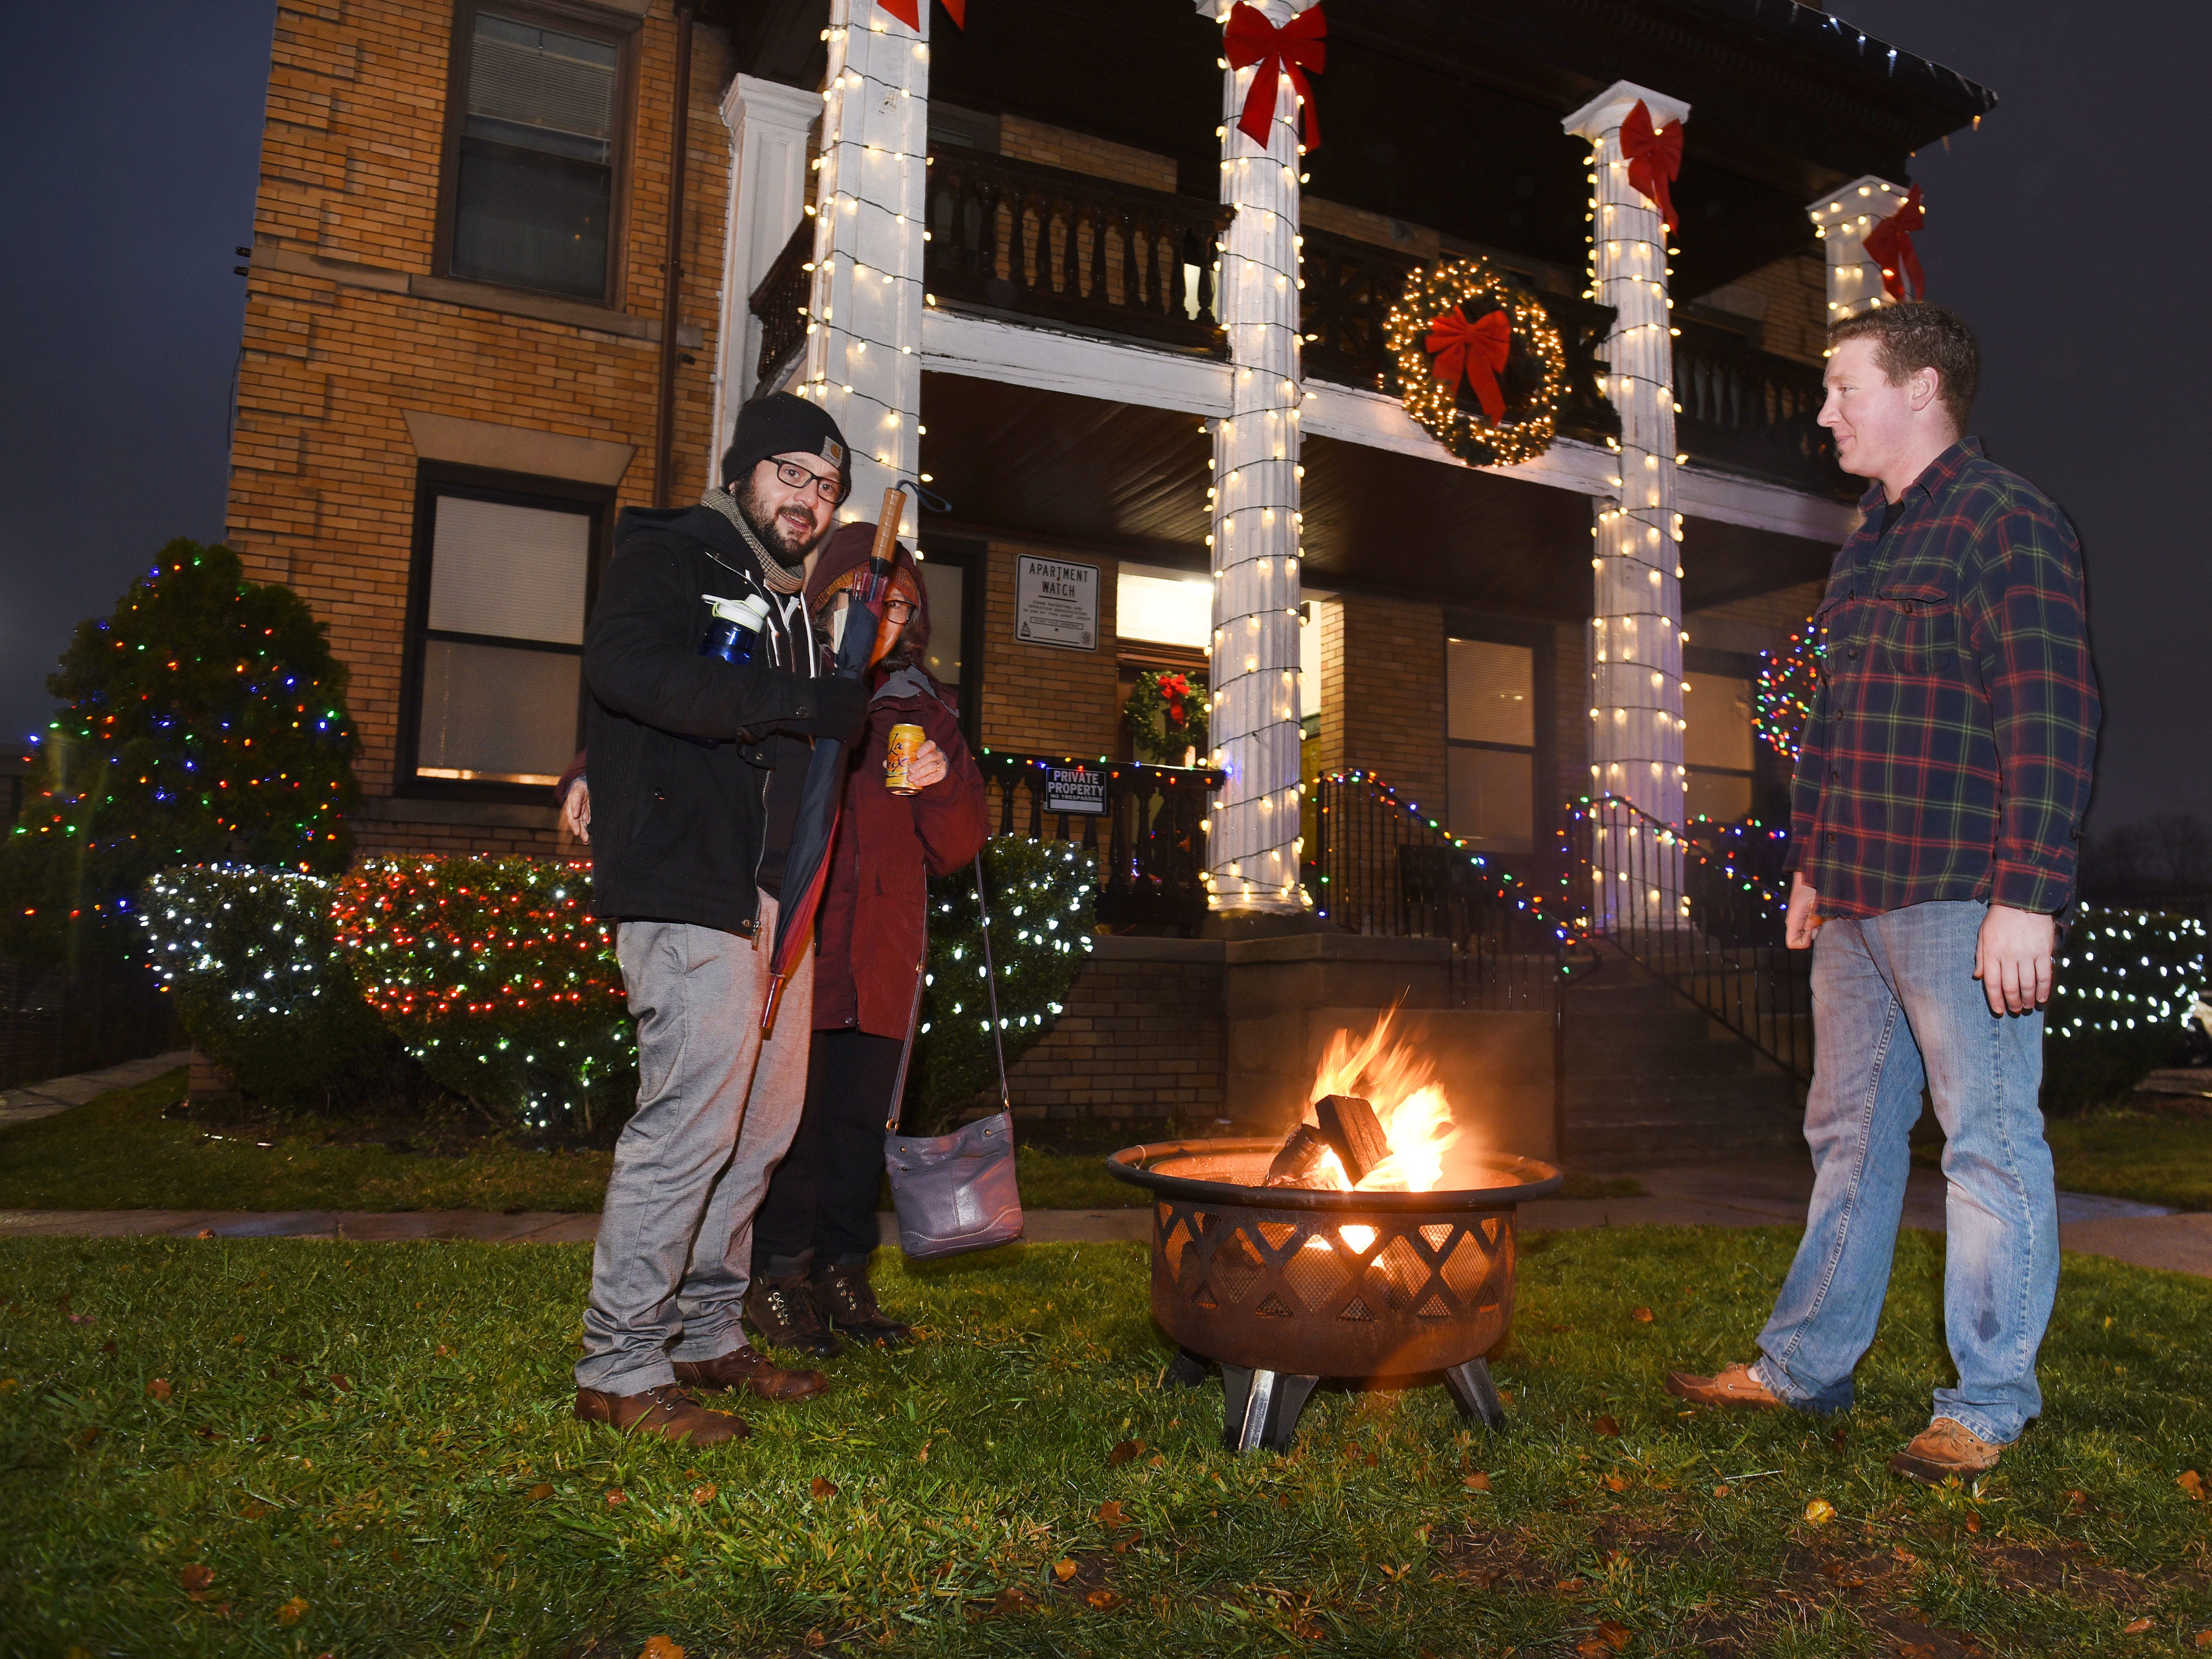 A bright fire burns outside the Christmas decorated Carrick Apartments along Cass Avenue as people brave the cold  during Noel Night in midtown Detroit.